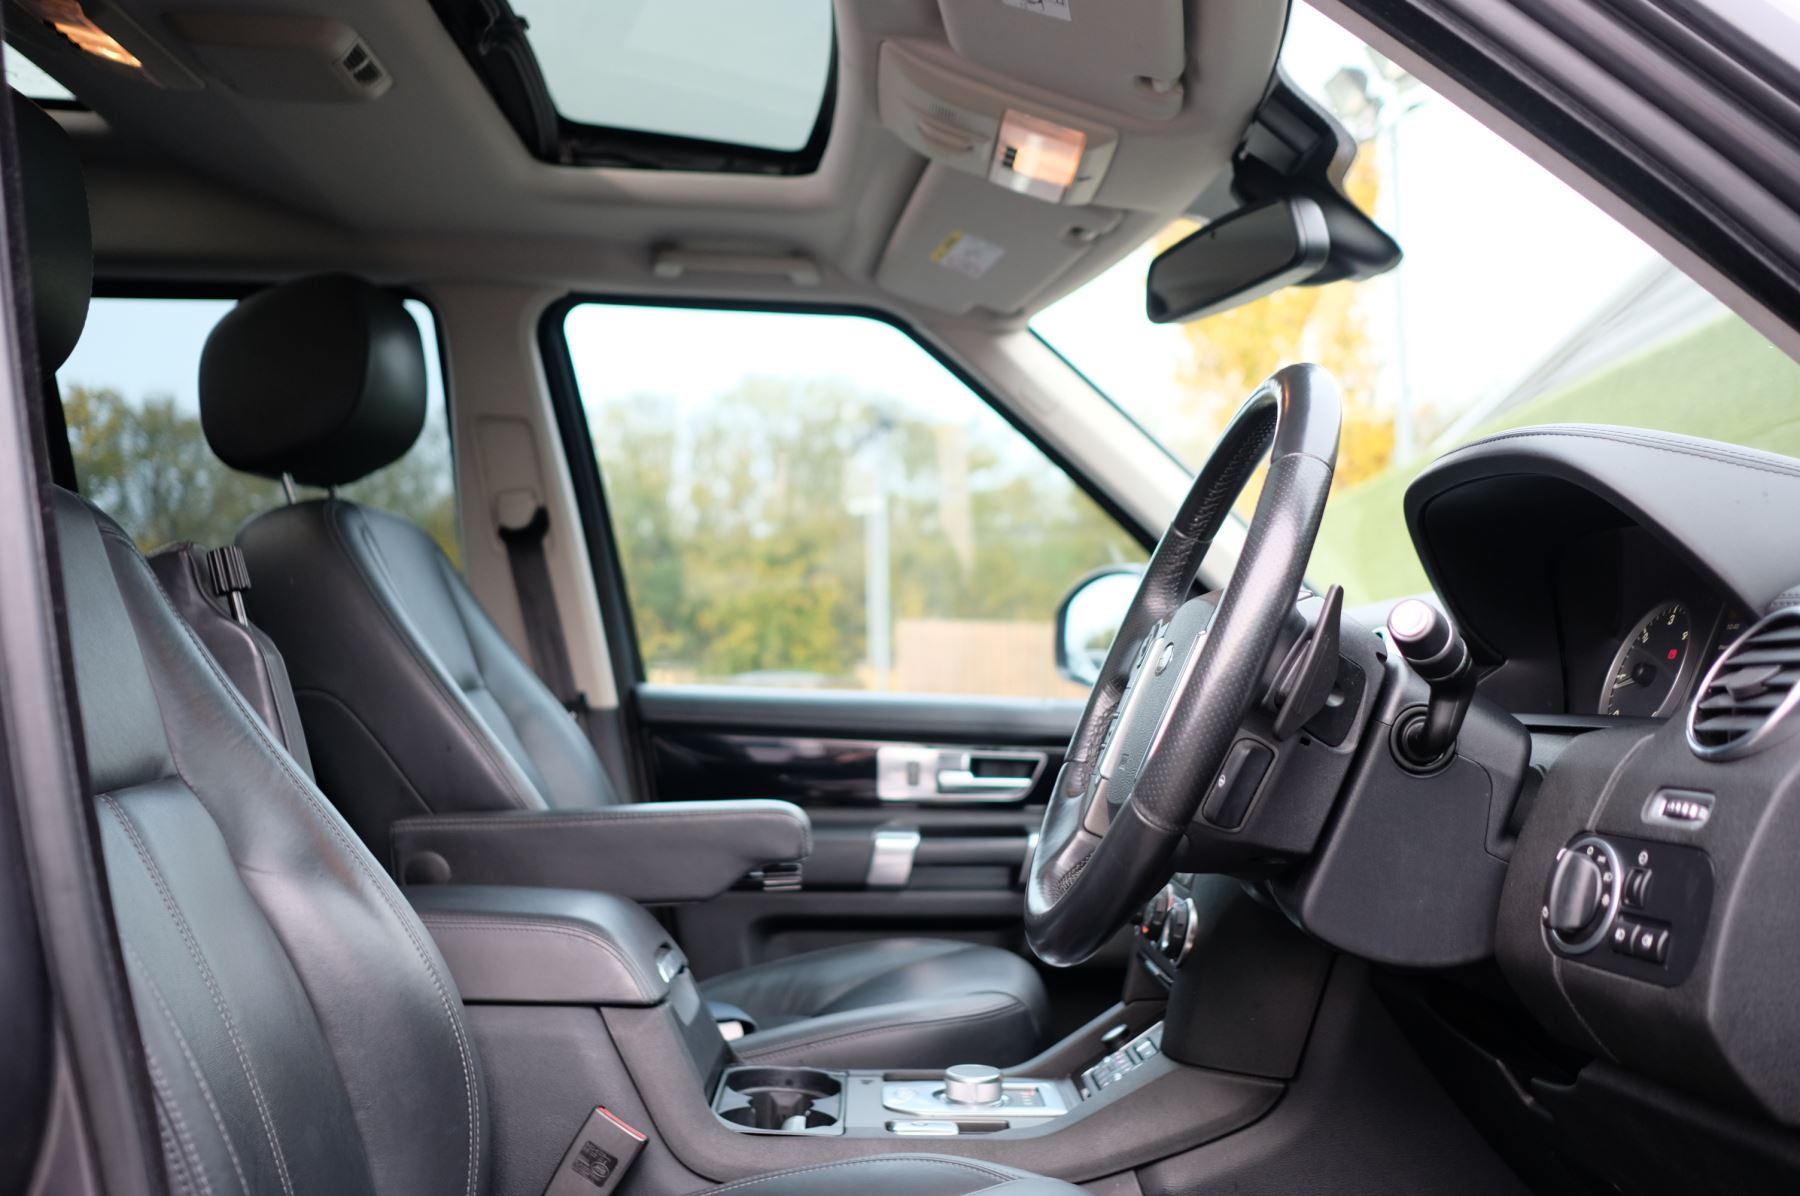 Land Rover Discovery 3.0 SDV6 HSE Luxury 5dr image 11